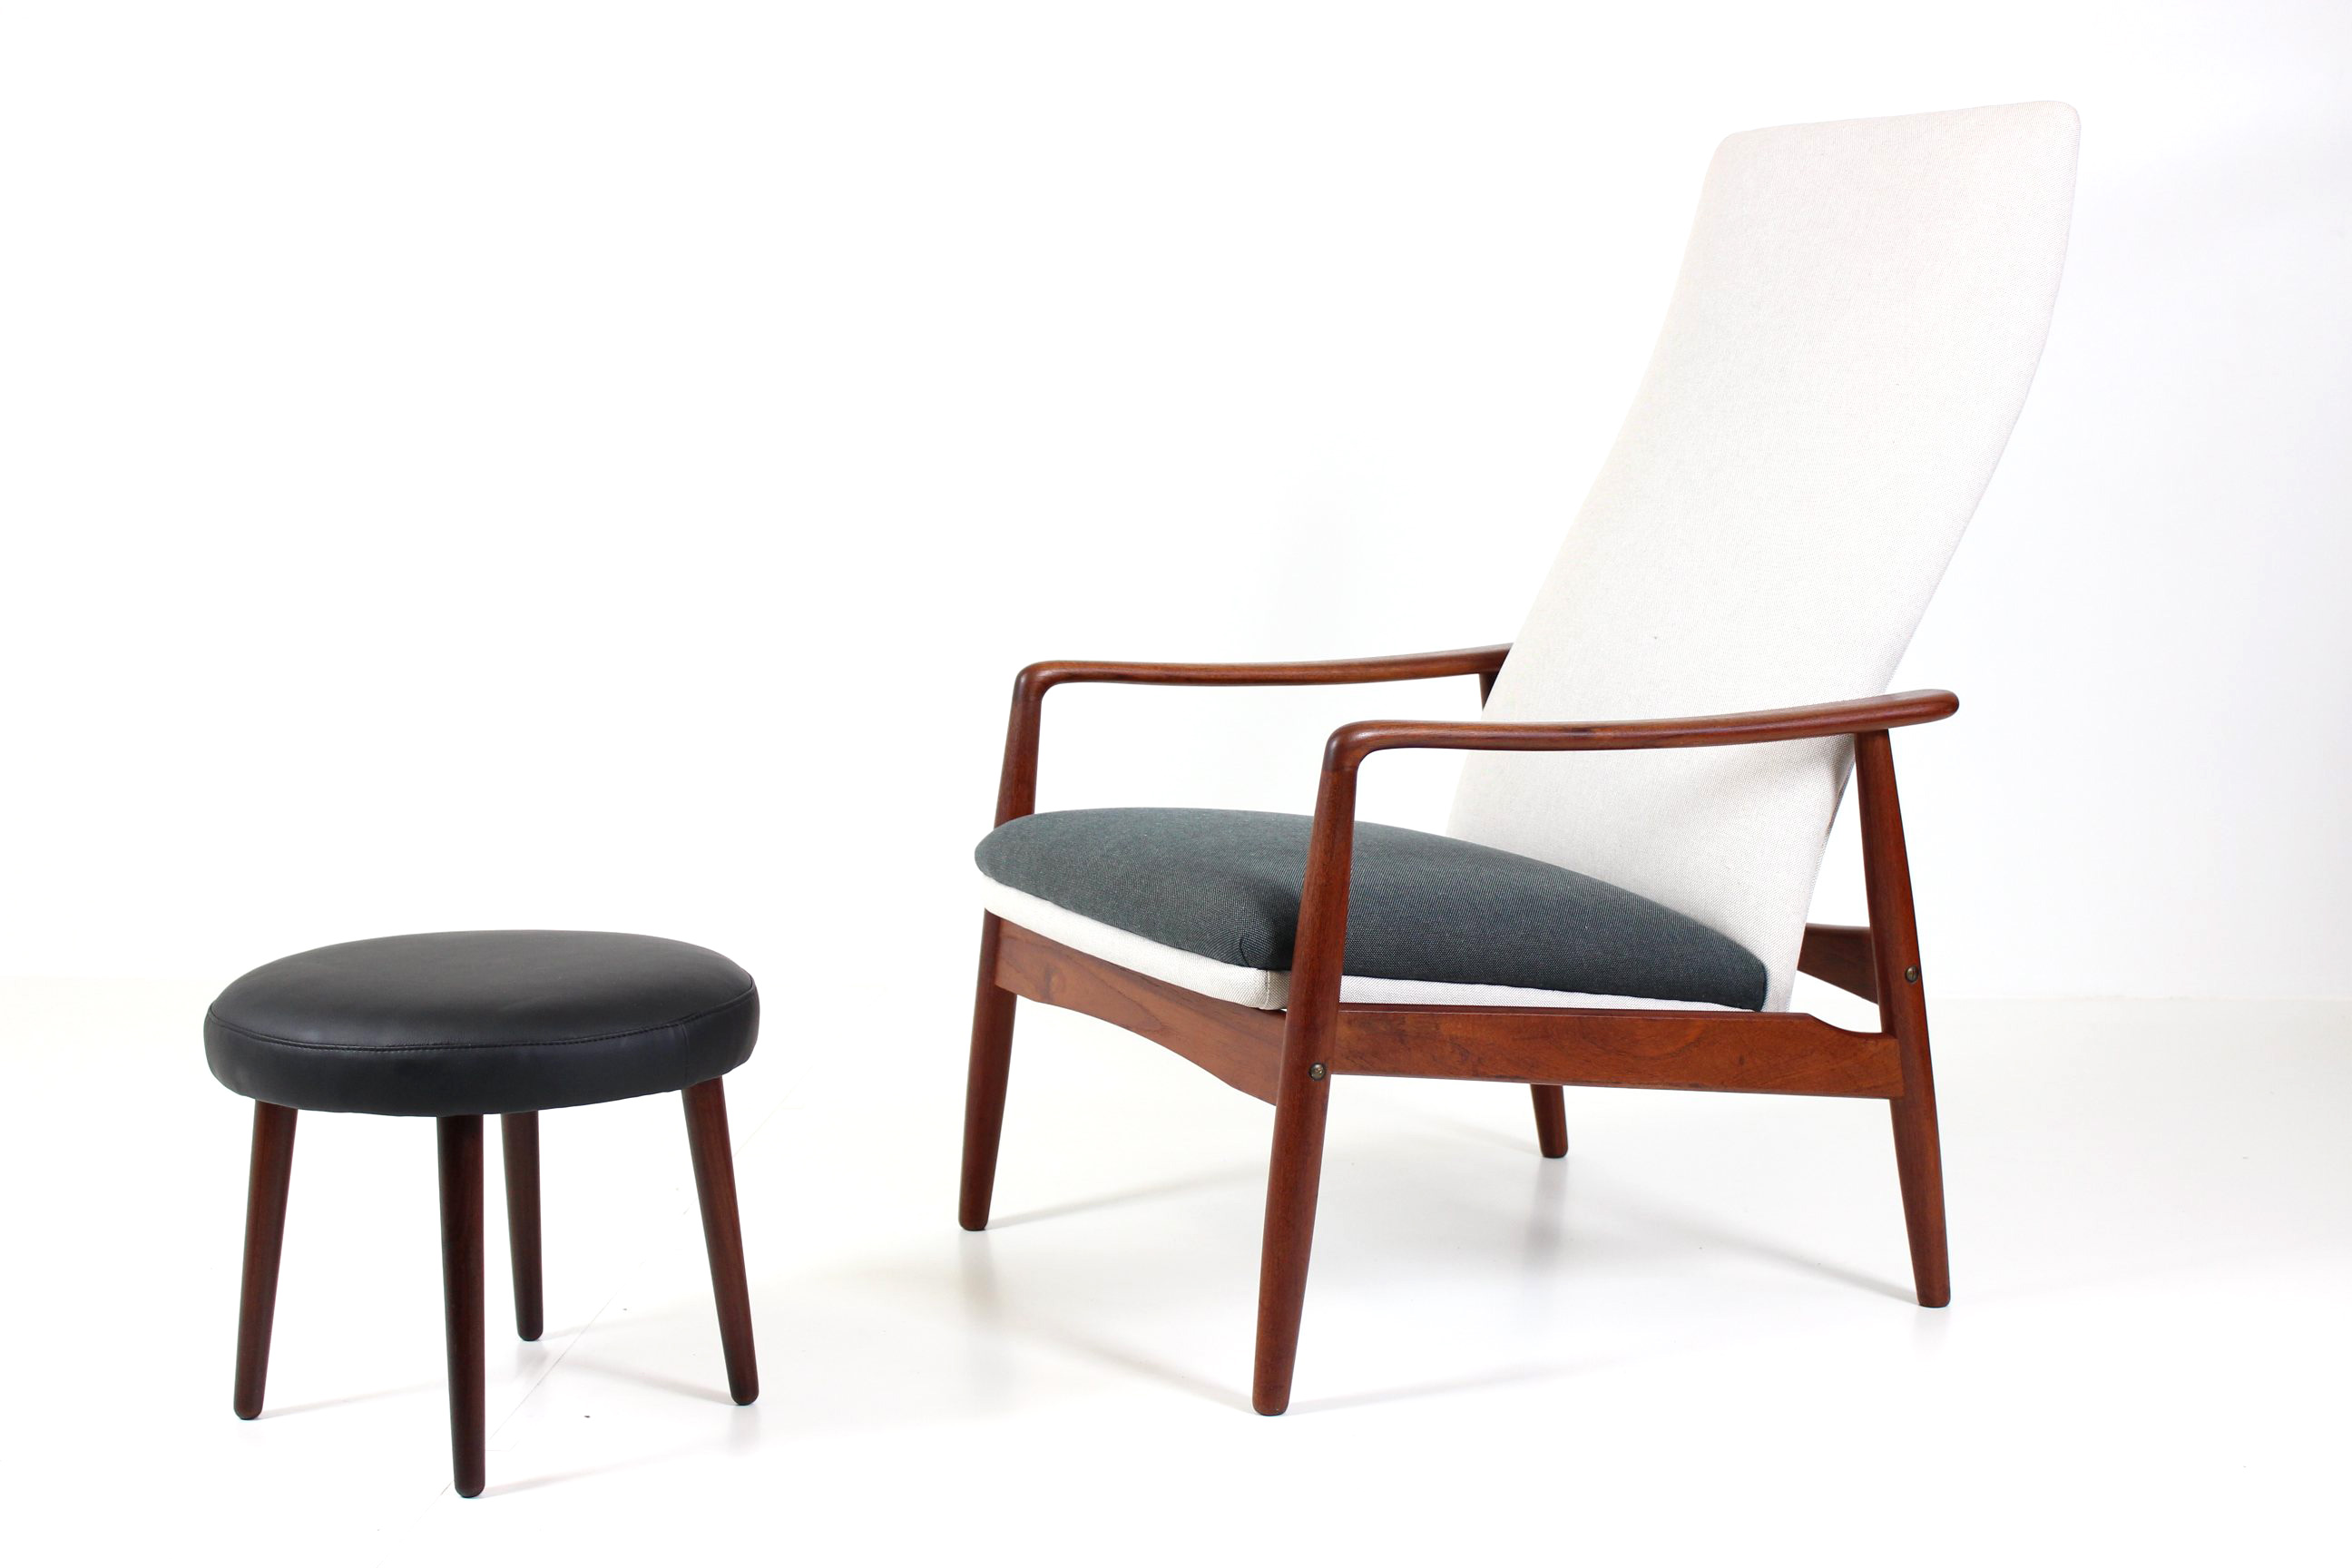 Reclining Lounge Chair by S¸ren B Ladefoged for SL M¸bler